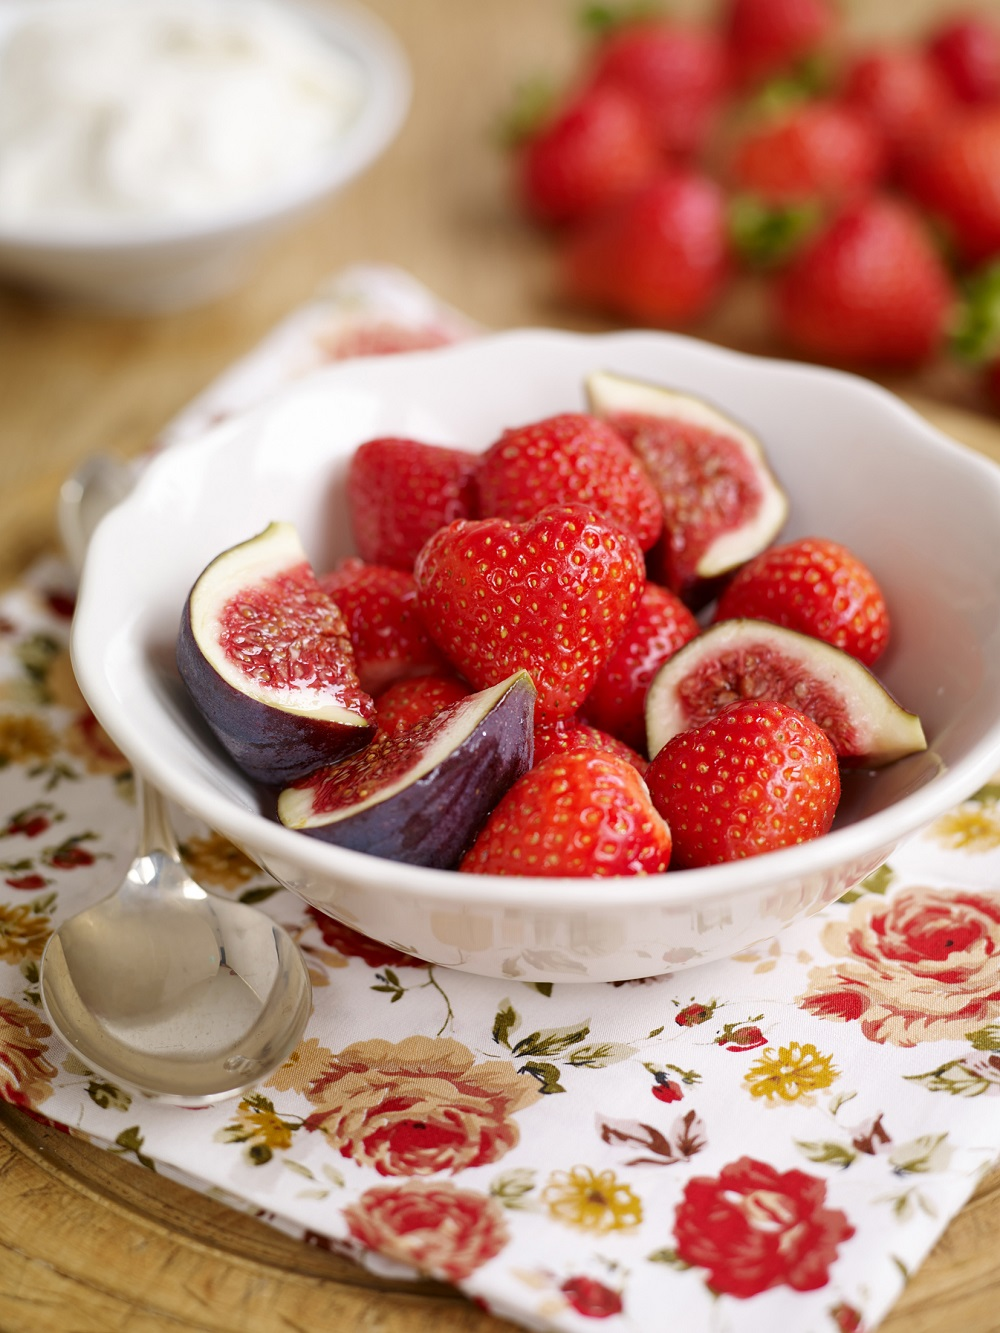 BerryWorld Strawberry, Fig and Rosewater Salad